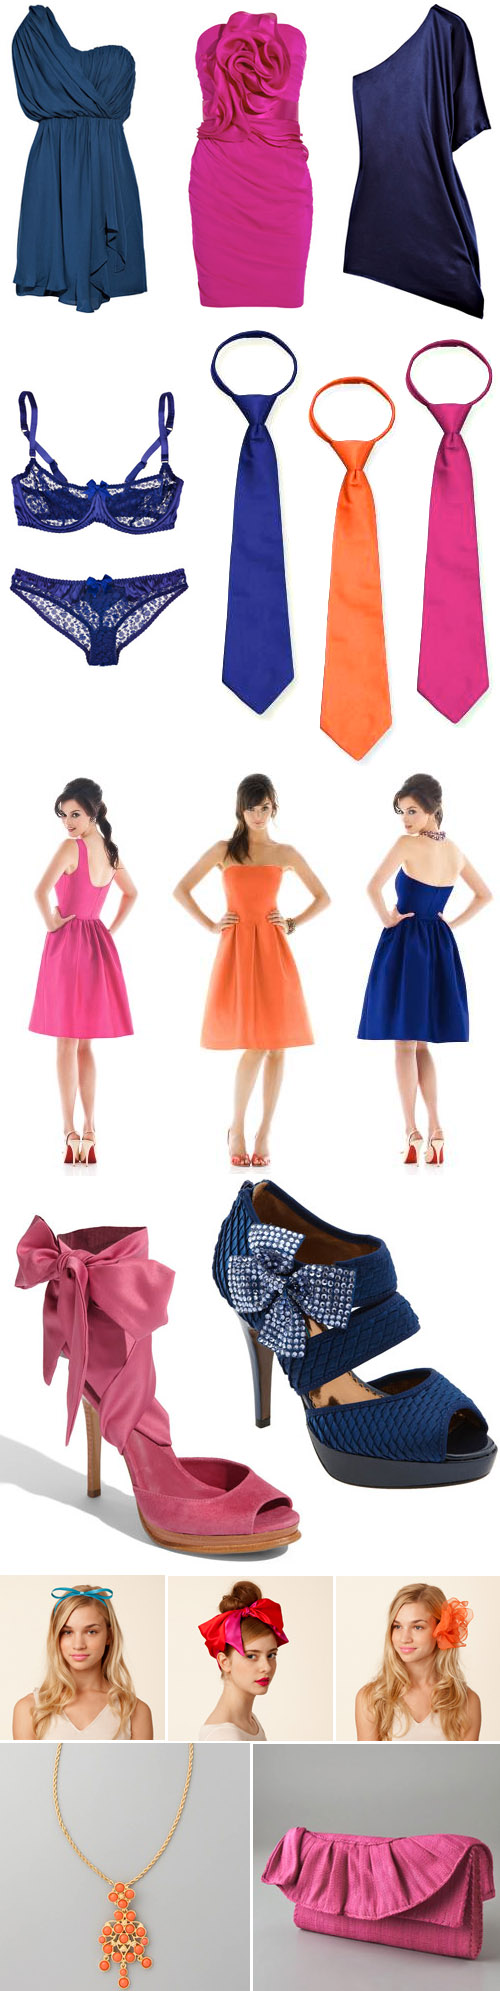 royal blue, hot pink and orange wedding fashion and accessory ideas